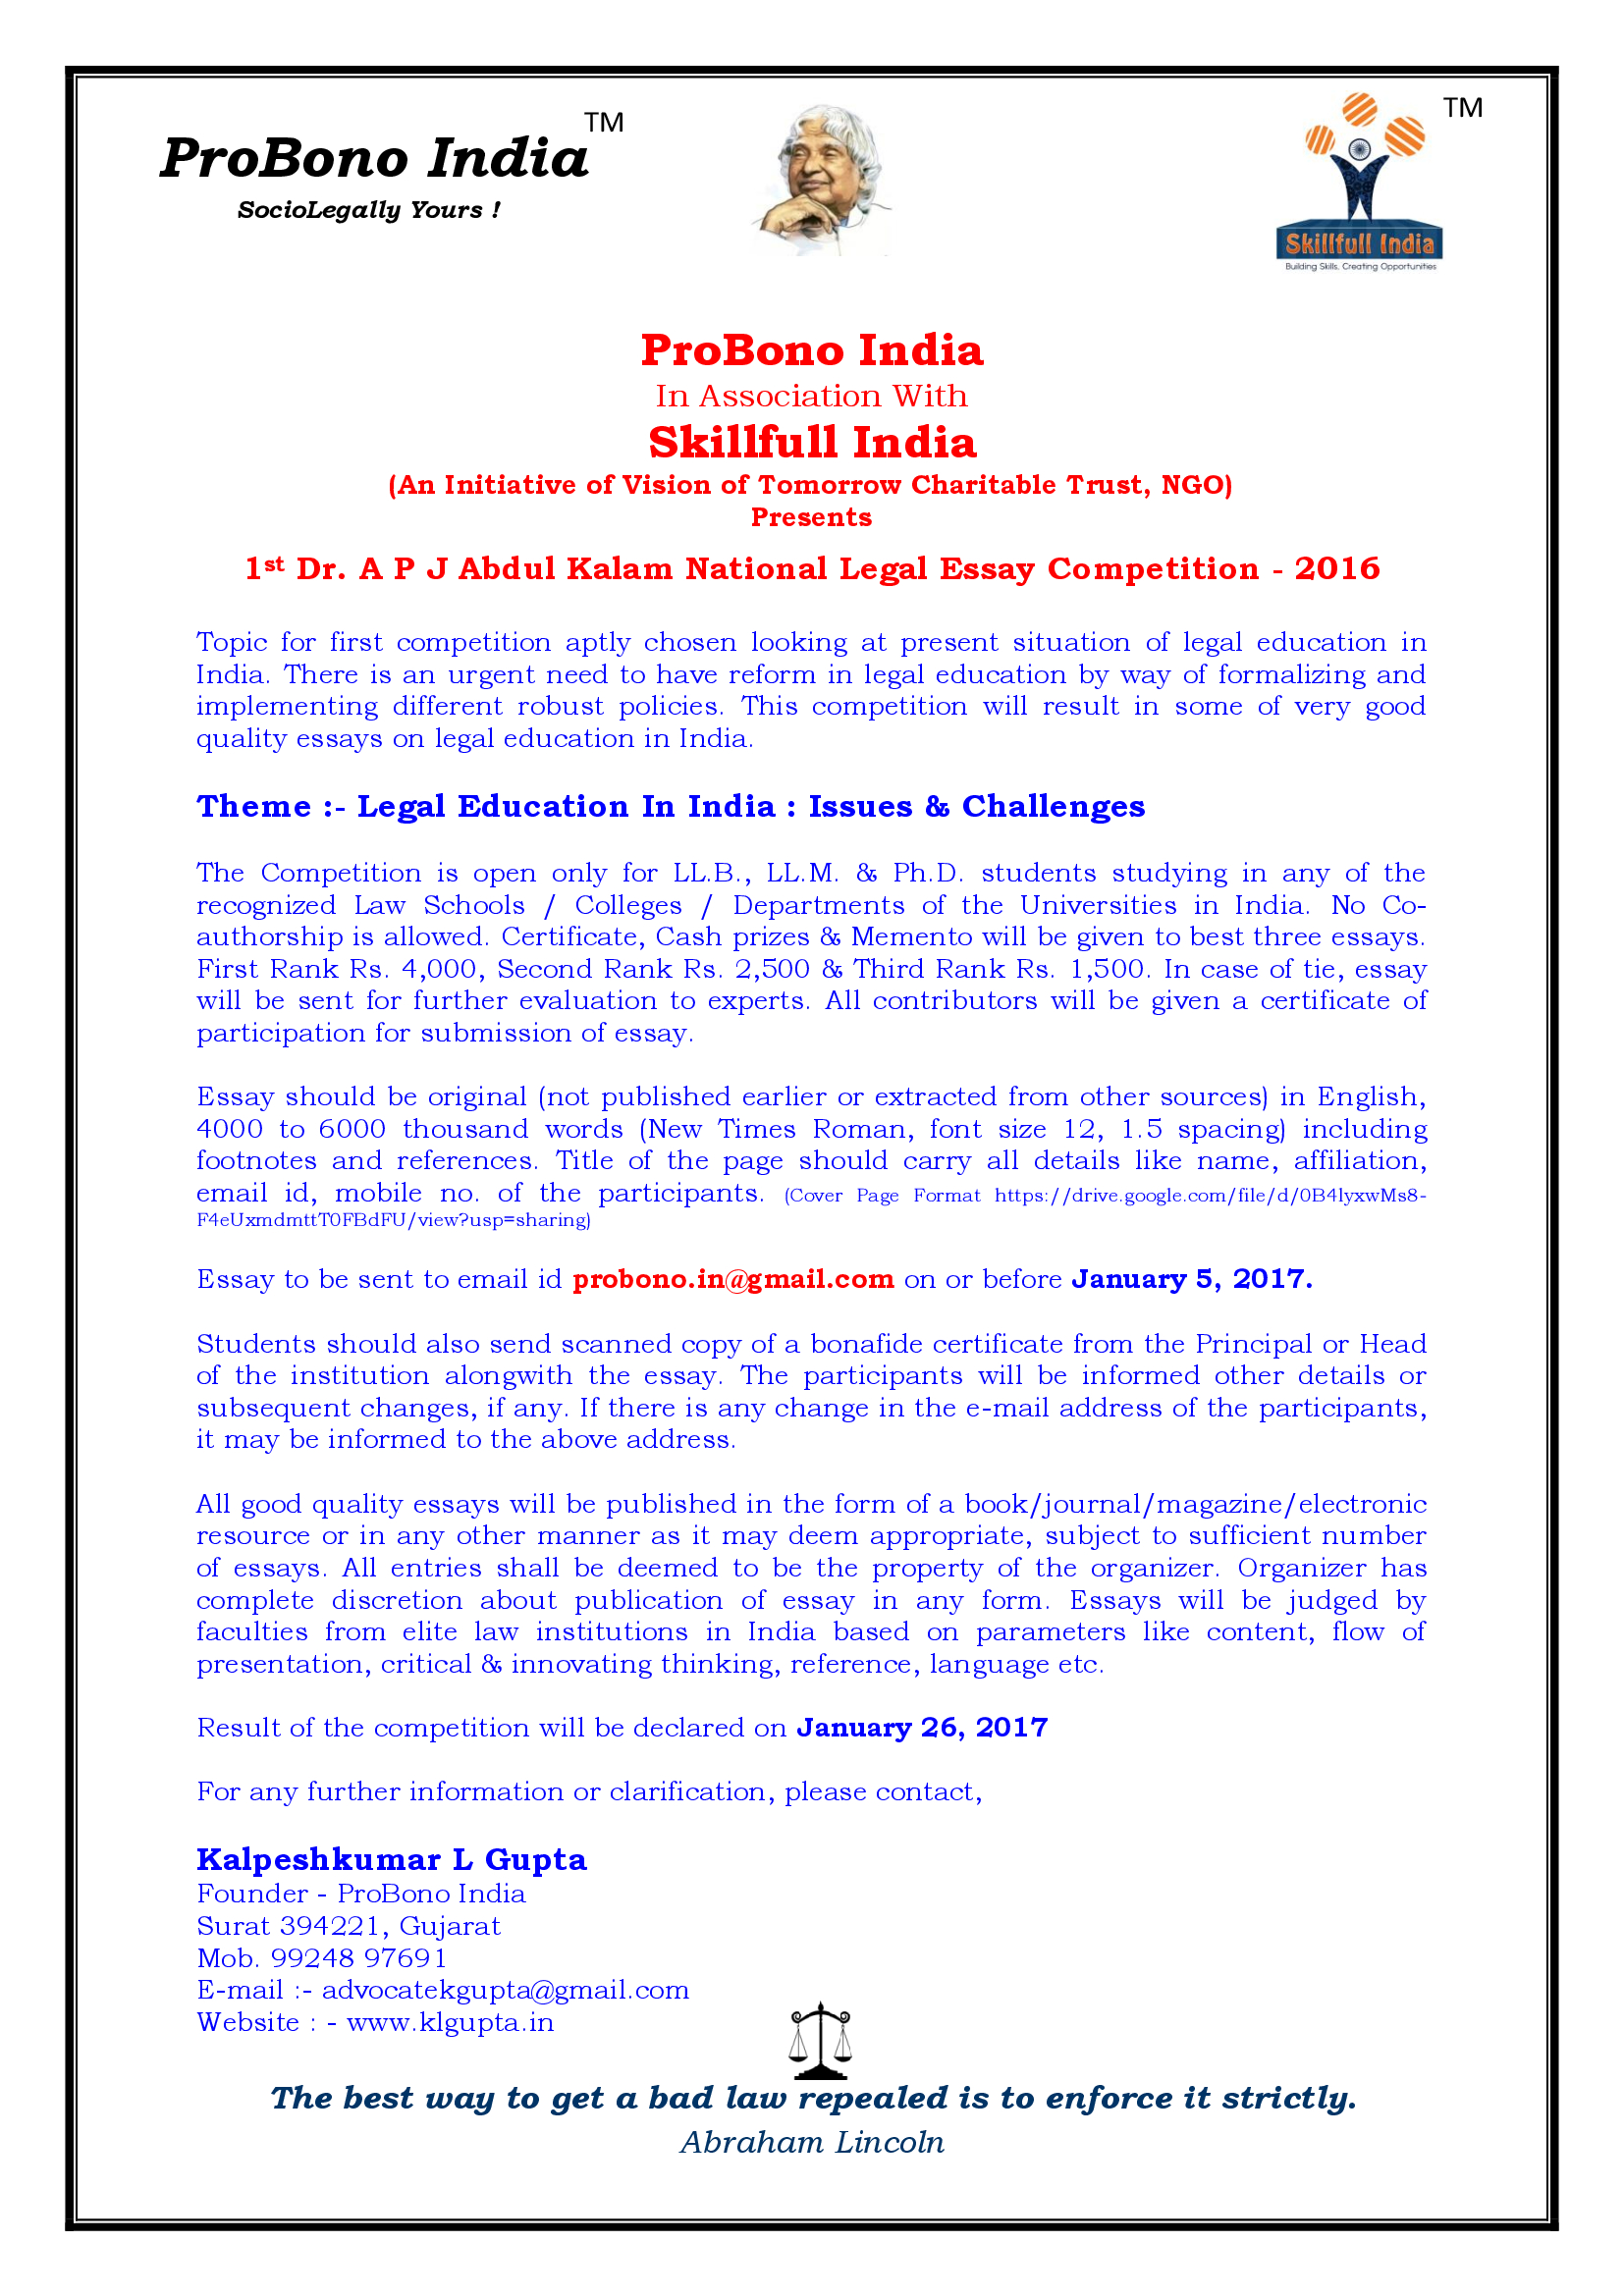 012 Essay Example Font Size 1st Dr P J Abdul Kalam National Level Competition With Skillfull Stunning Format College Apa Full